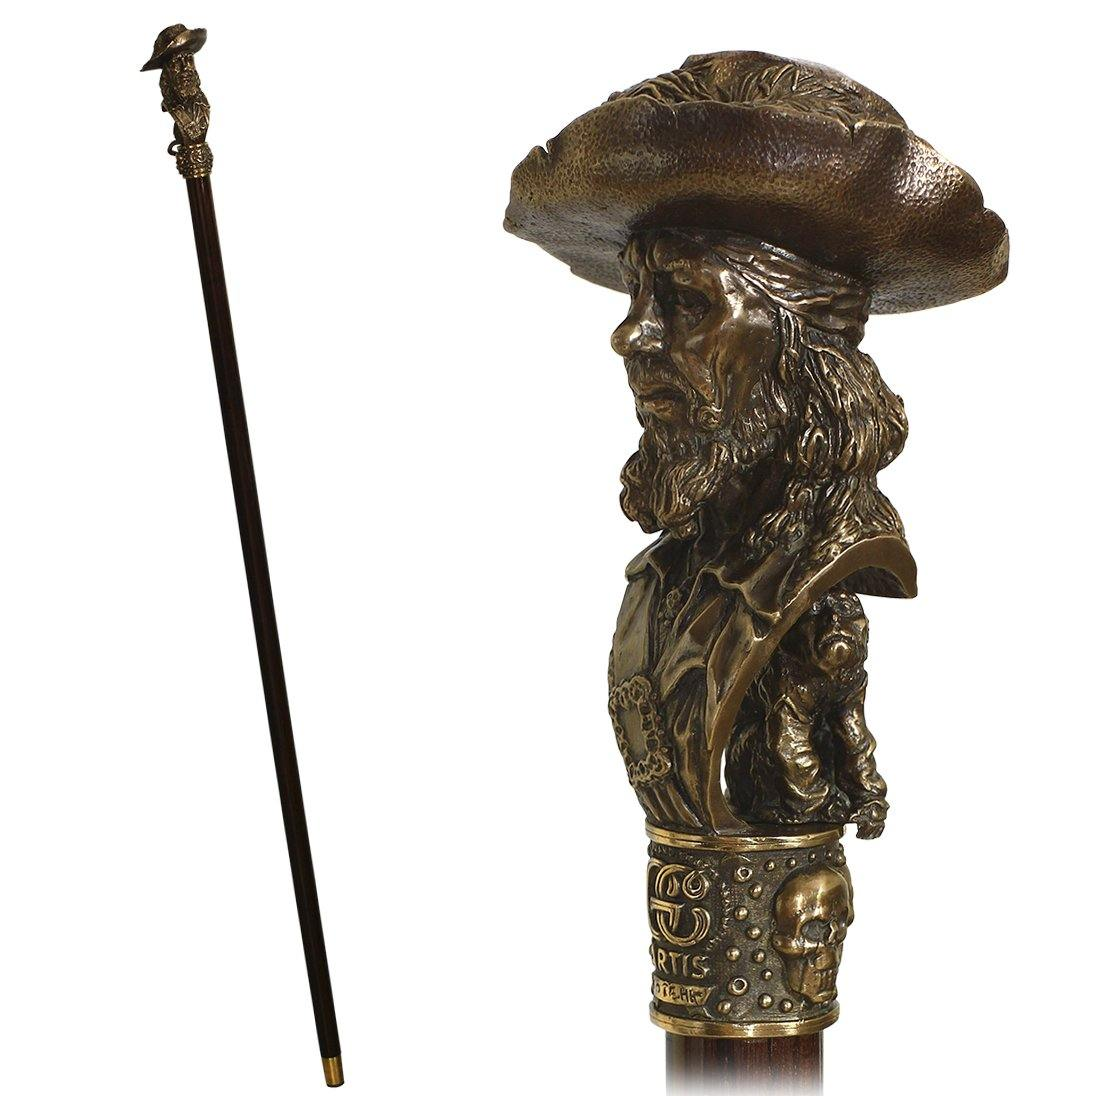 Pirate Captain with Monkey Bronze collectible walking stick - GC-Artis Walking Sticks Canes